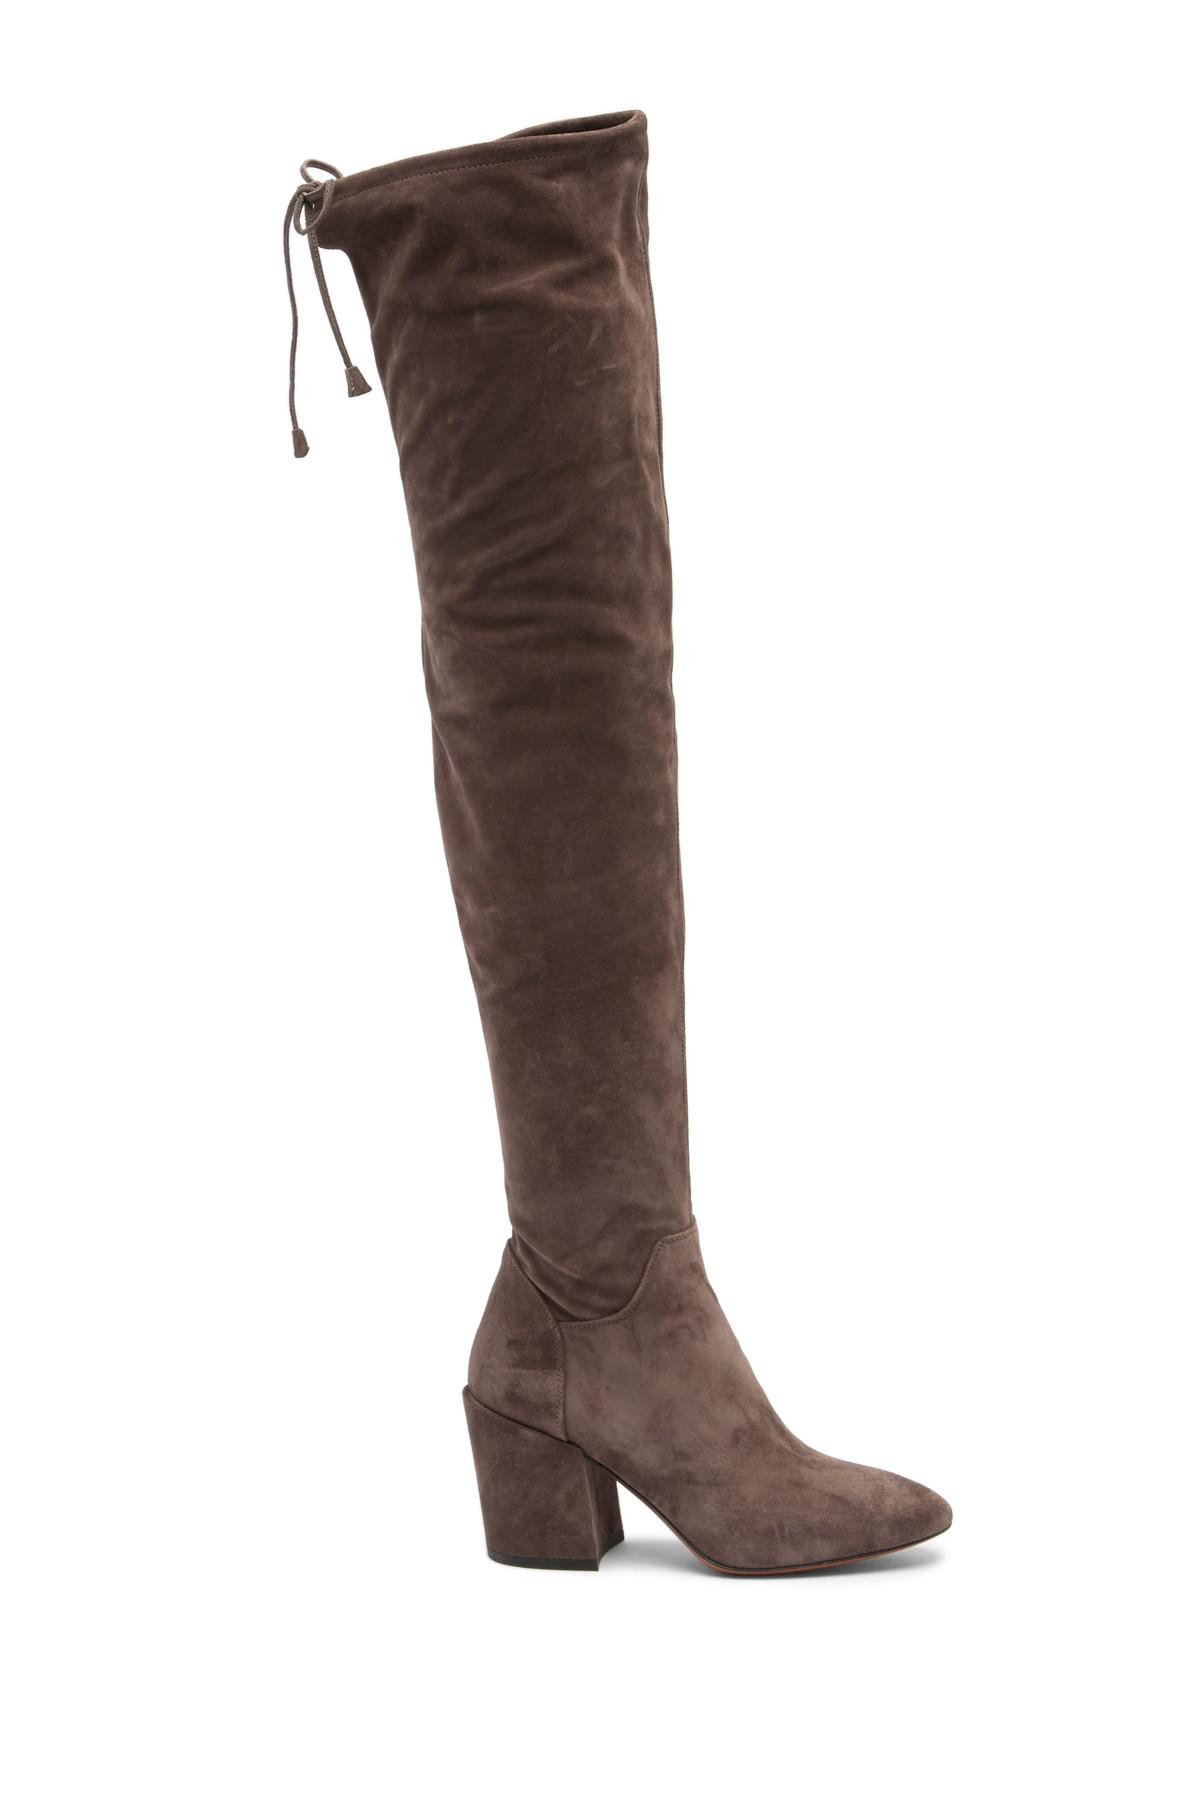 39aff89de8b249 Lyst - Aquatalia Florencia Suede Knee High Boot in Brown